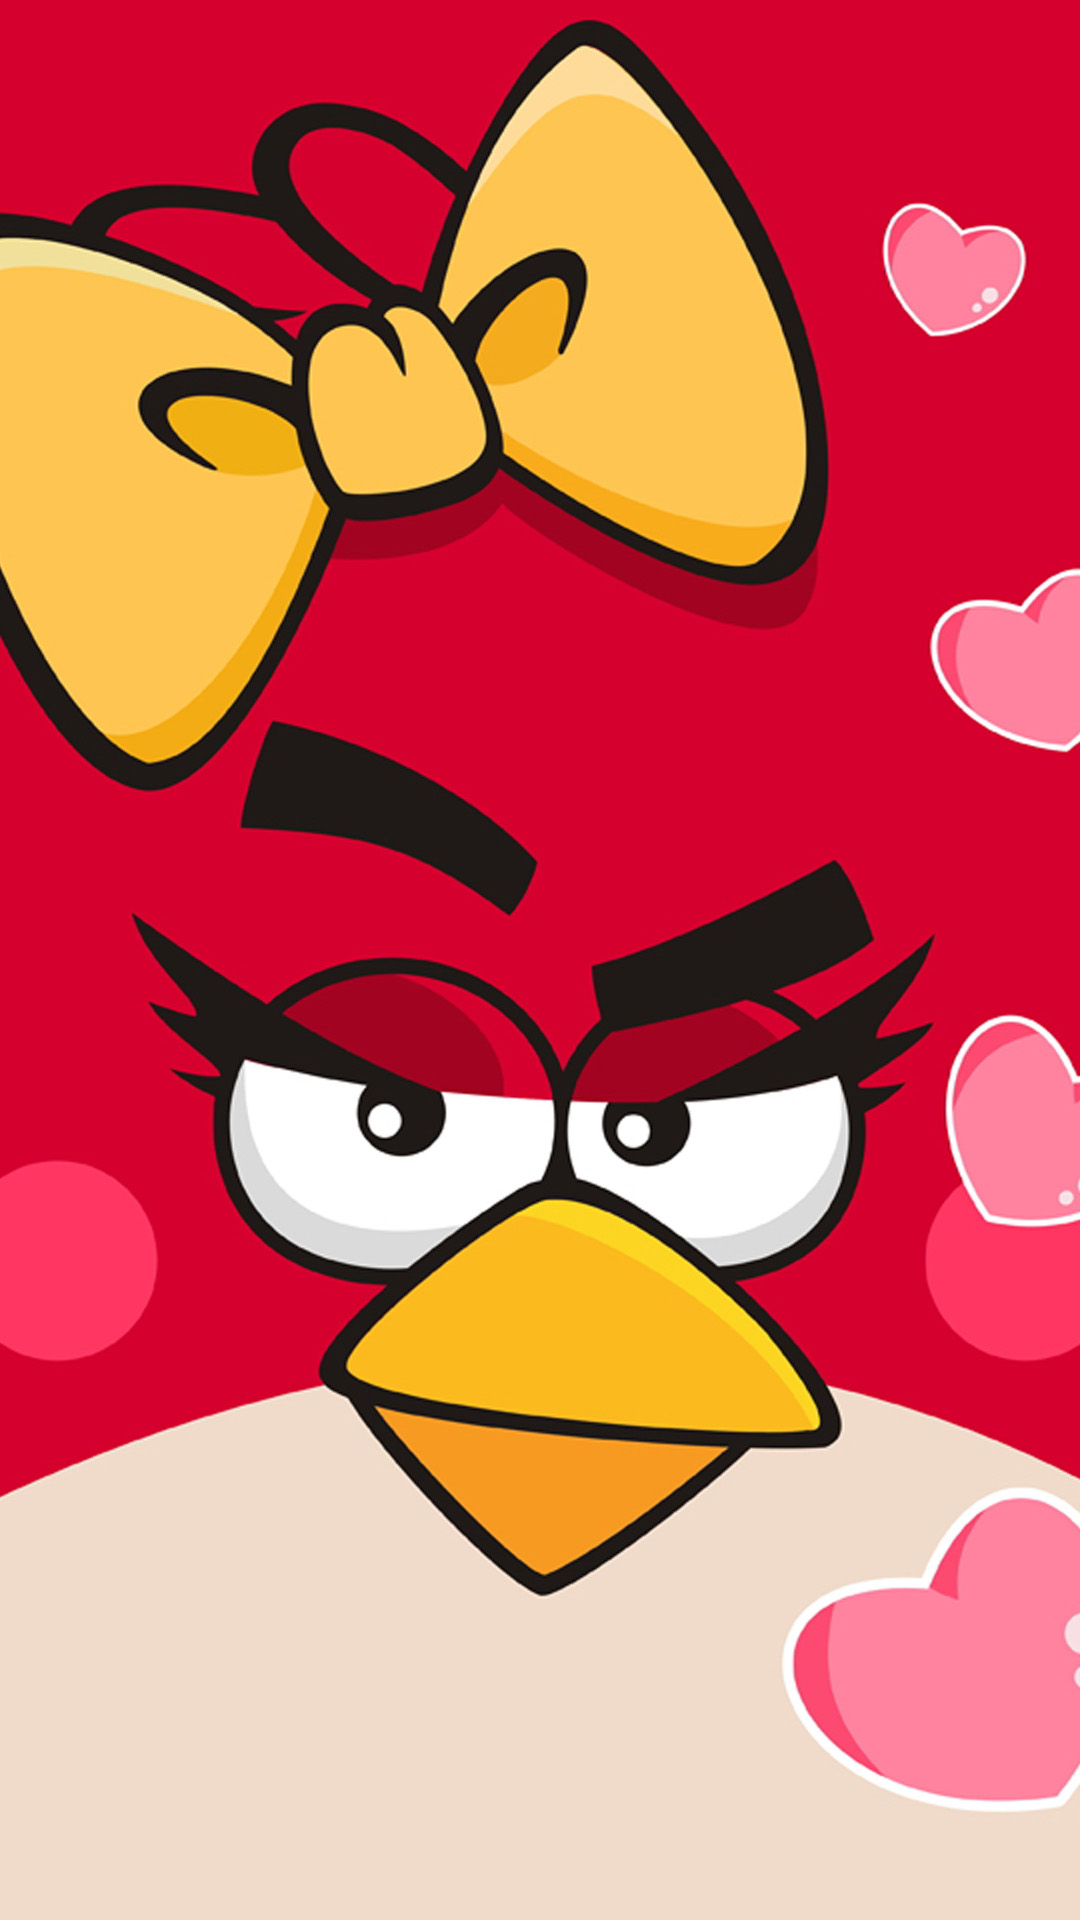 iphone 6 plus angry birds 01 games wallpaper